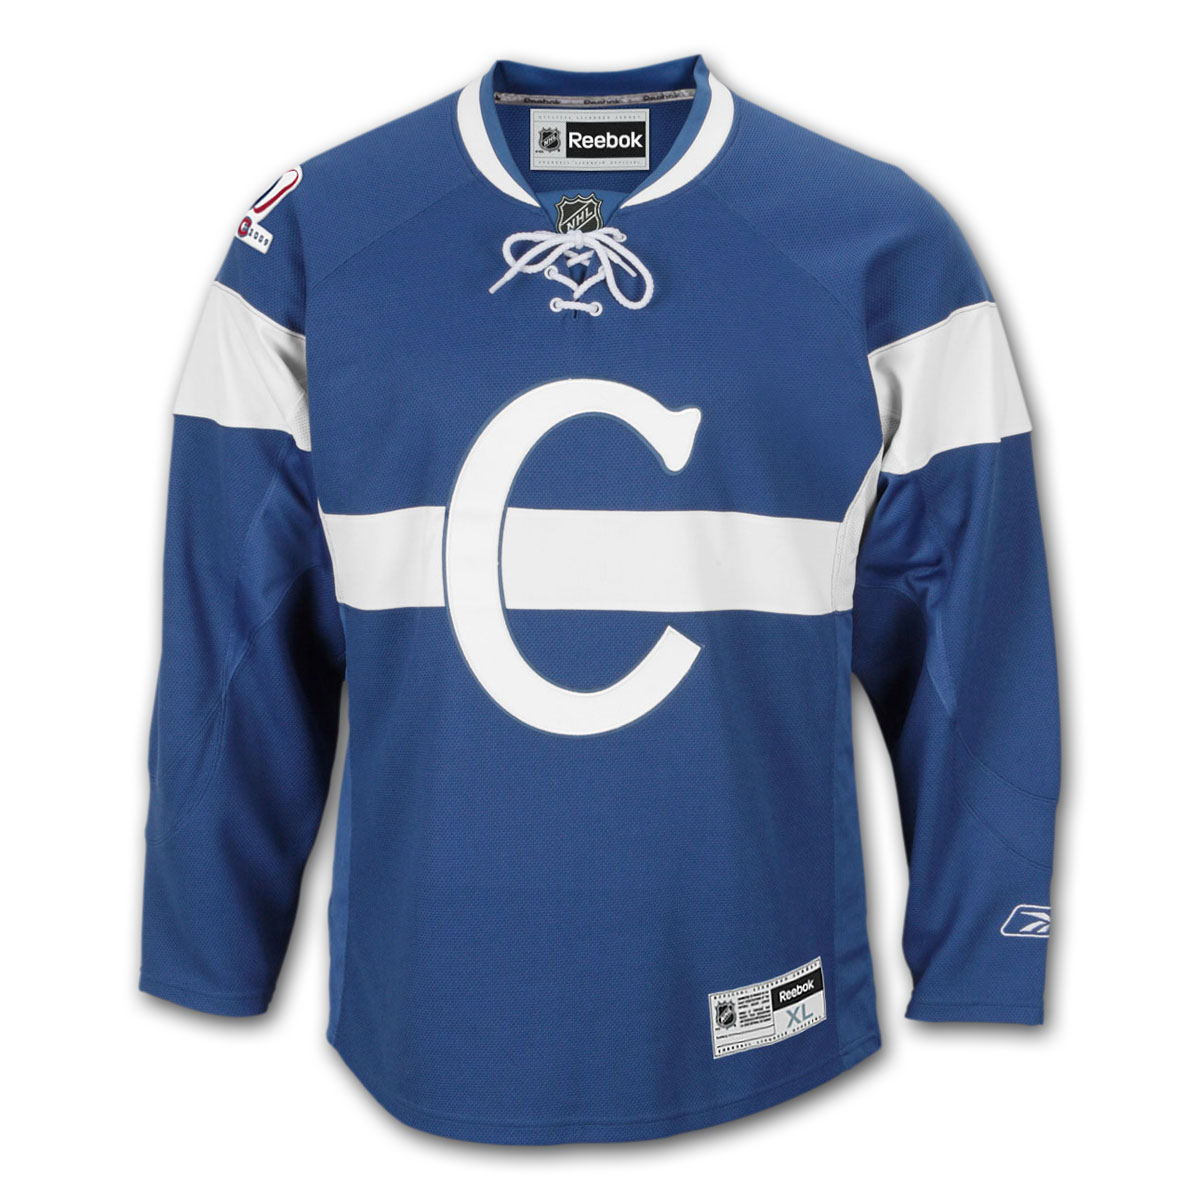 photo courtesy http://reviews.icejerseys.com/product-reviews/NHL-East/Habs-Centennial/Jerseys/Reebok/p/9194-Montreal-Canadiens-Reebok-Premier-Replica-Centennial-1909-10-NHL-Hockey-Jersey.html